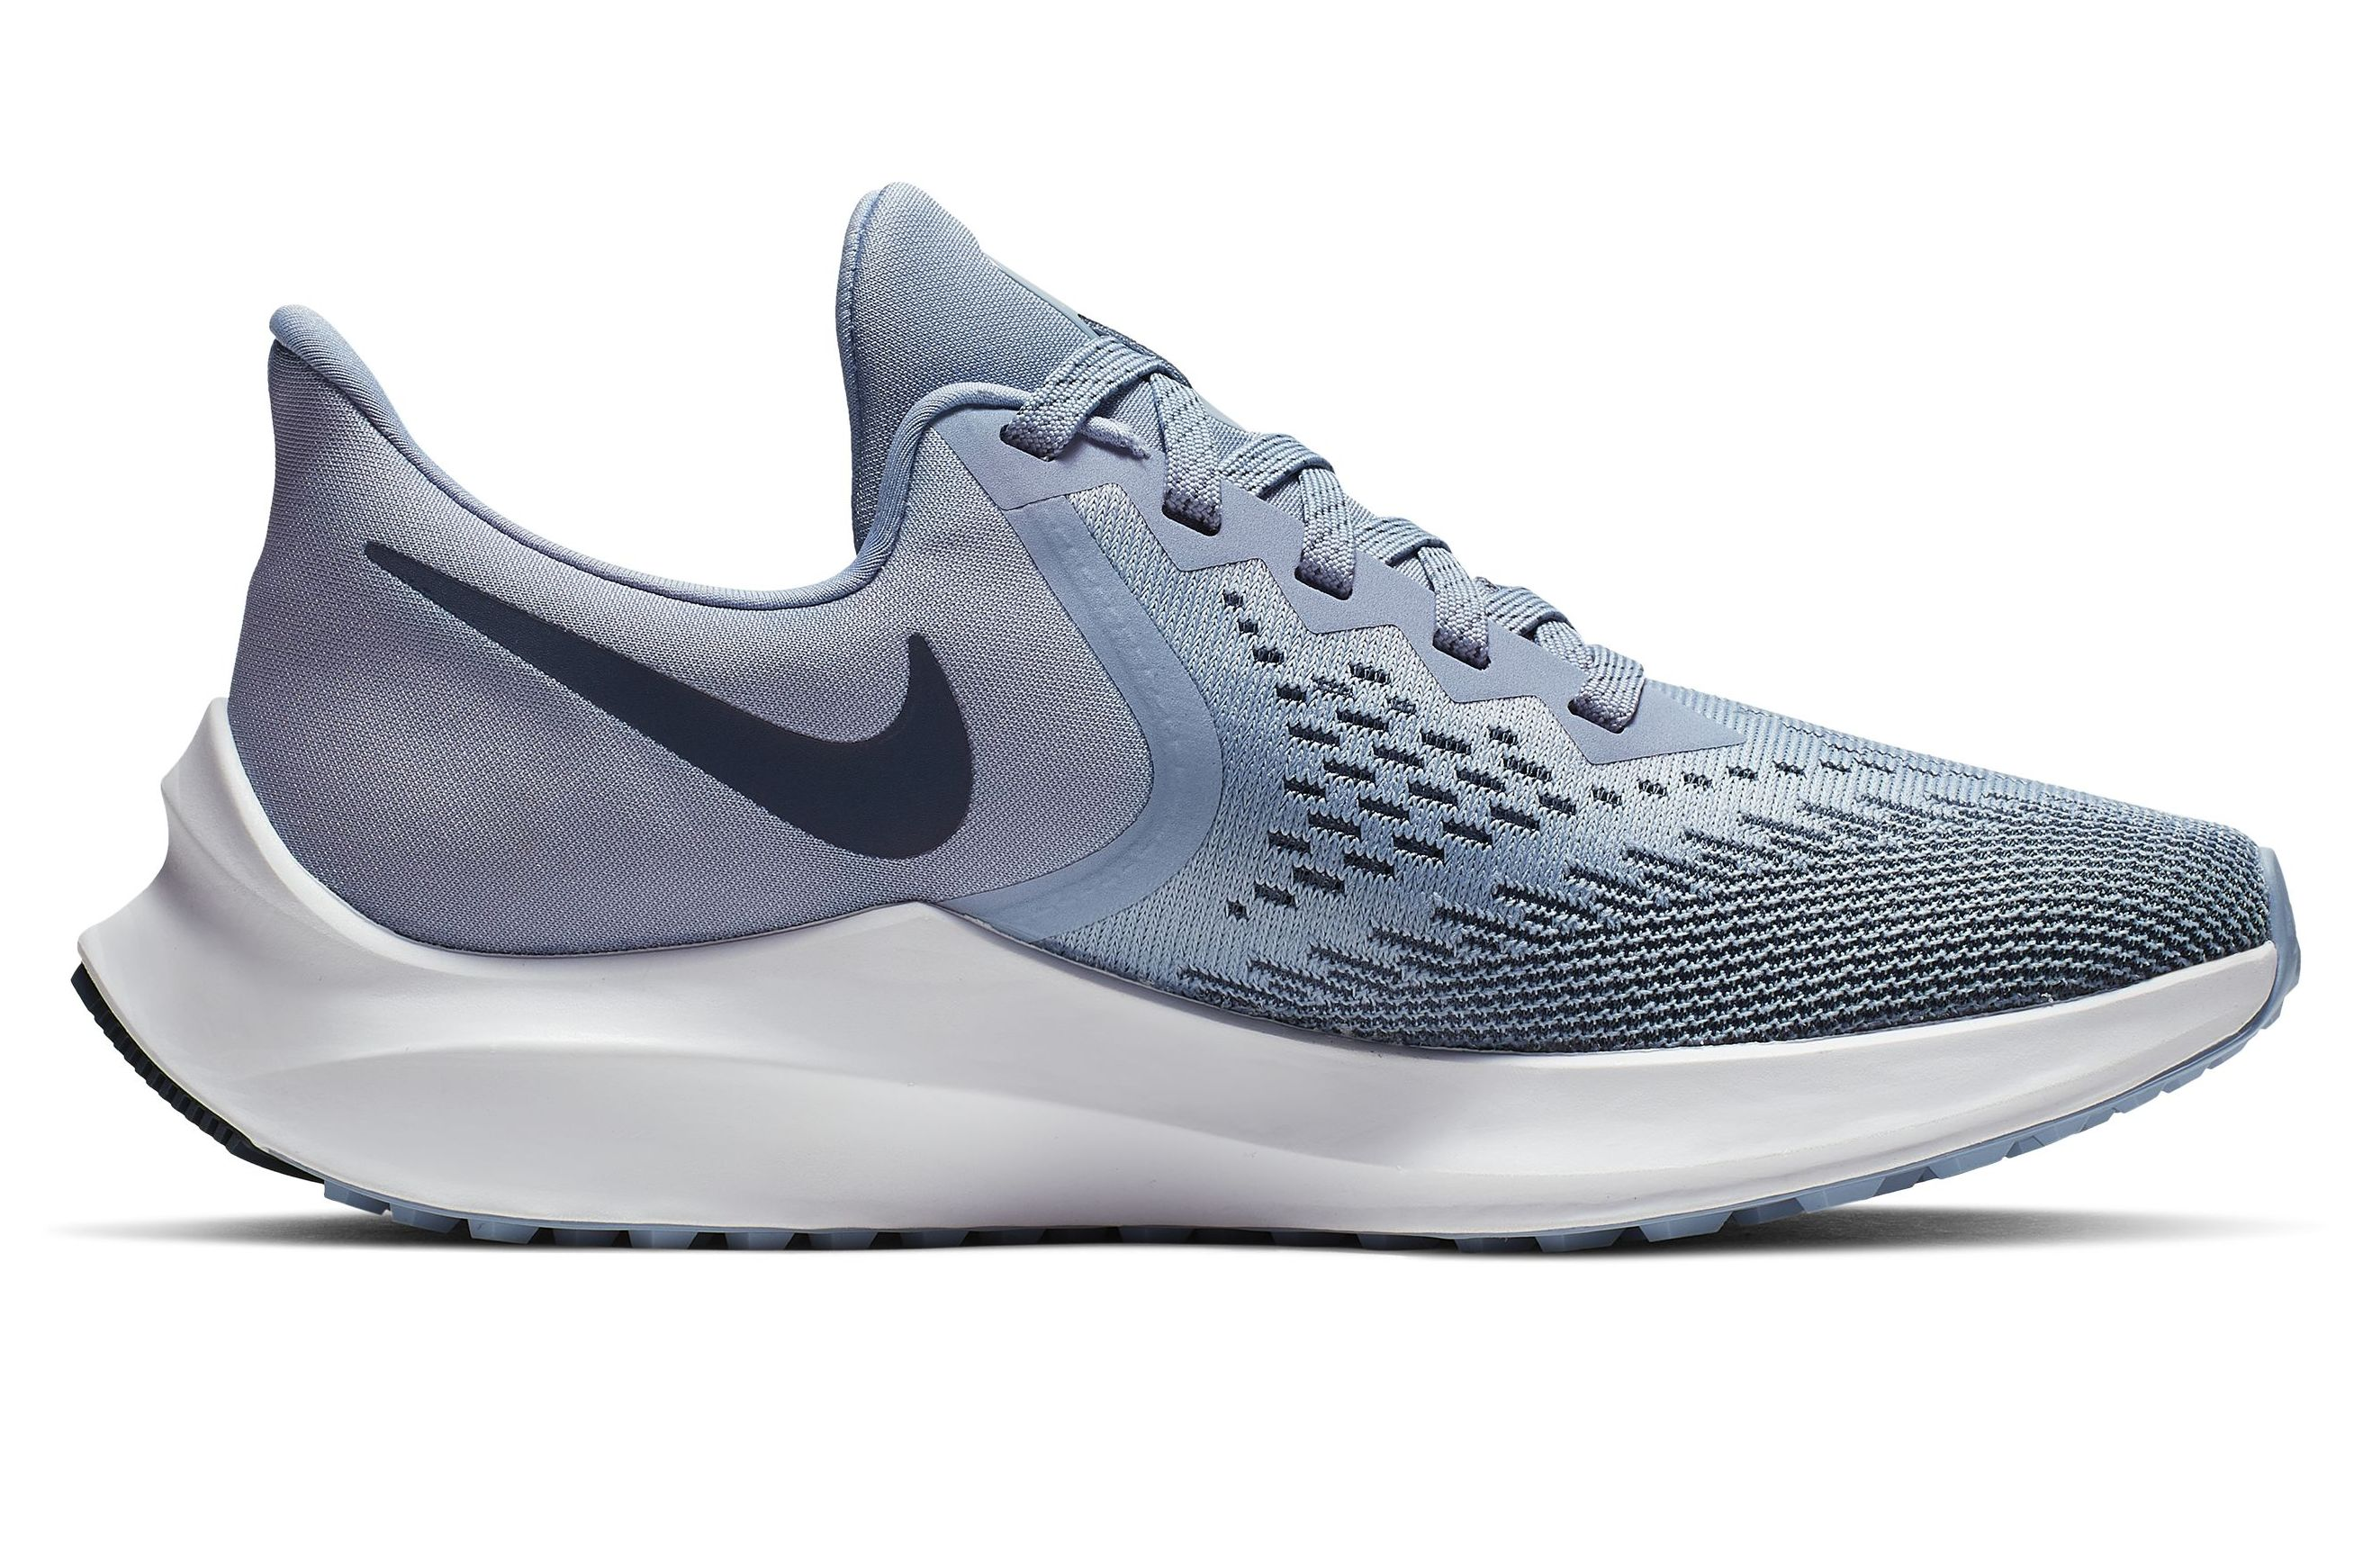 ab65fc60438 Nike Running Shoes for Women – Best Running Shoes for Women 2019